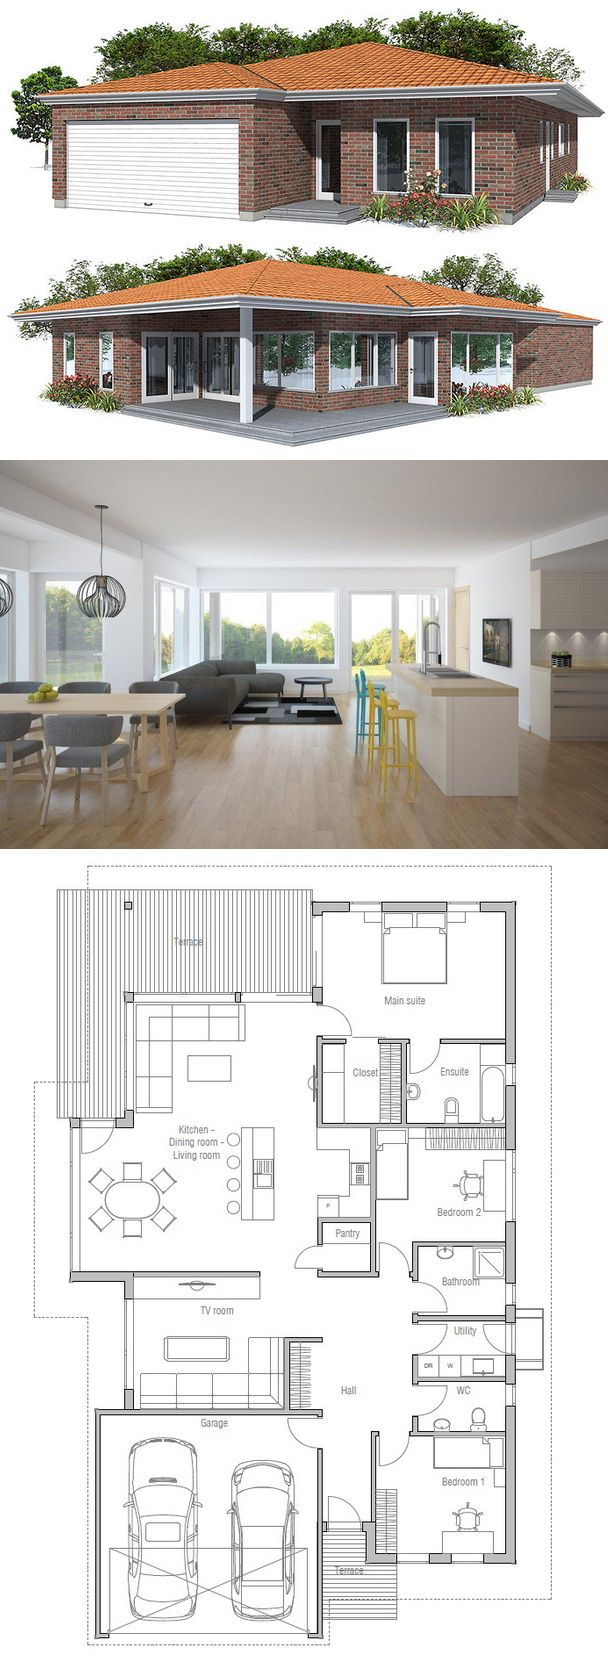 Smaller, more minimal. Might even eliminate the TV room to open the plan more.